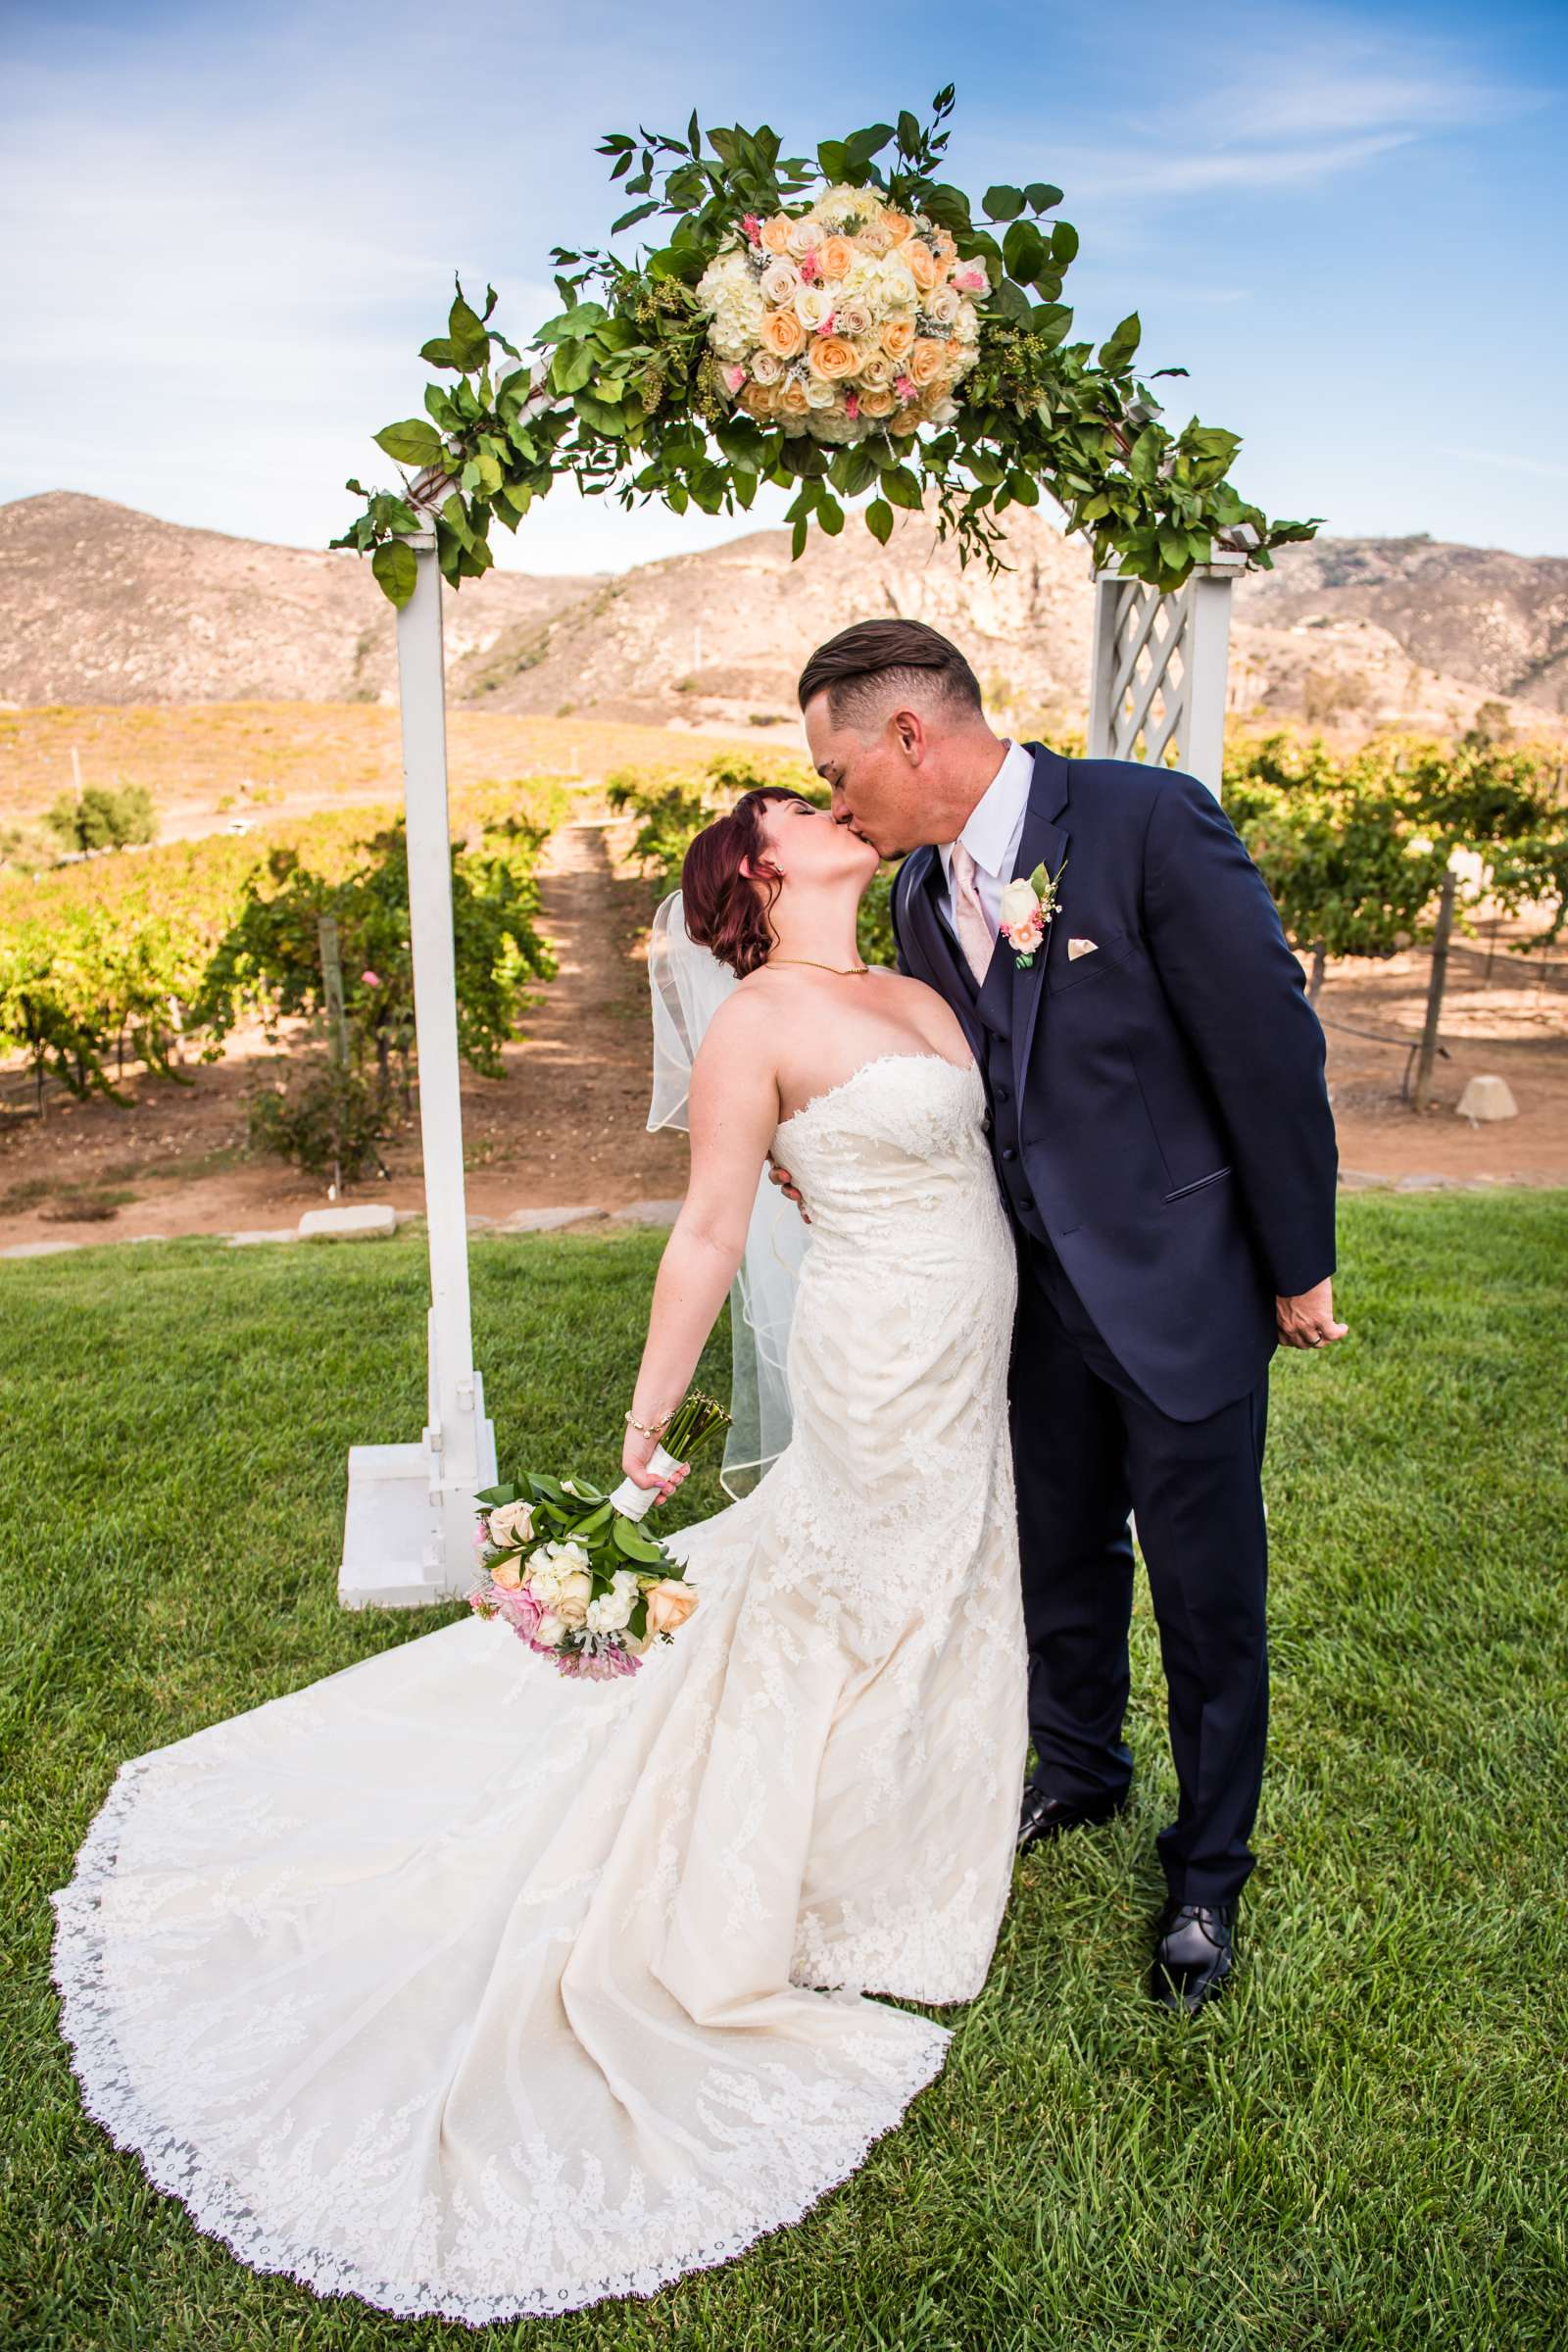 Orfila Vineyards Wedding, Tulasi and Richard Wedding Photo #45 by True Photography